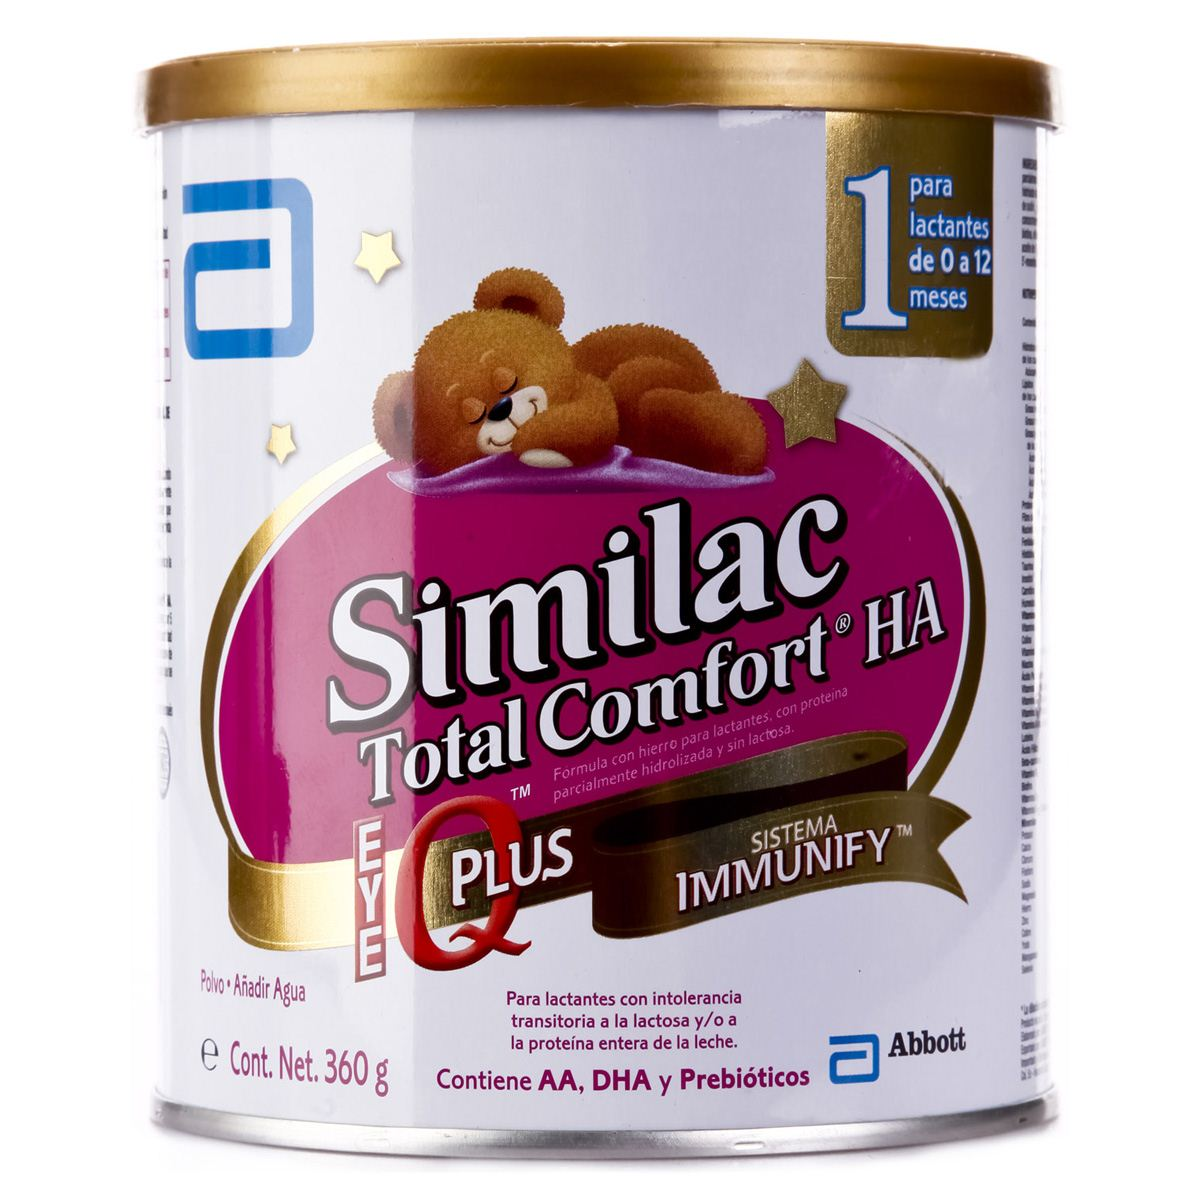 Similac tot comf ha 1 pvo  - Sanborns